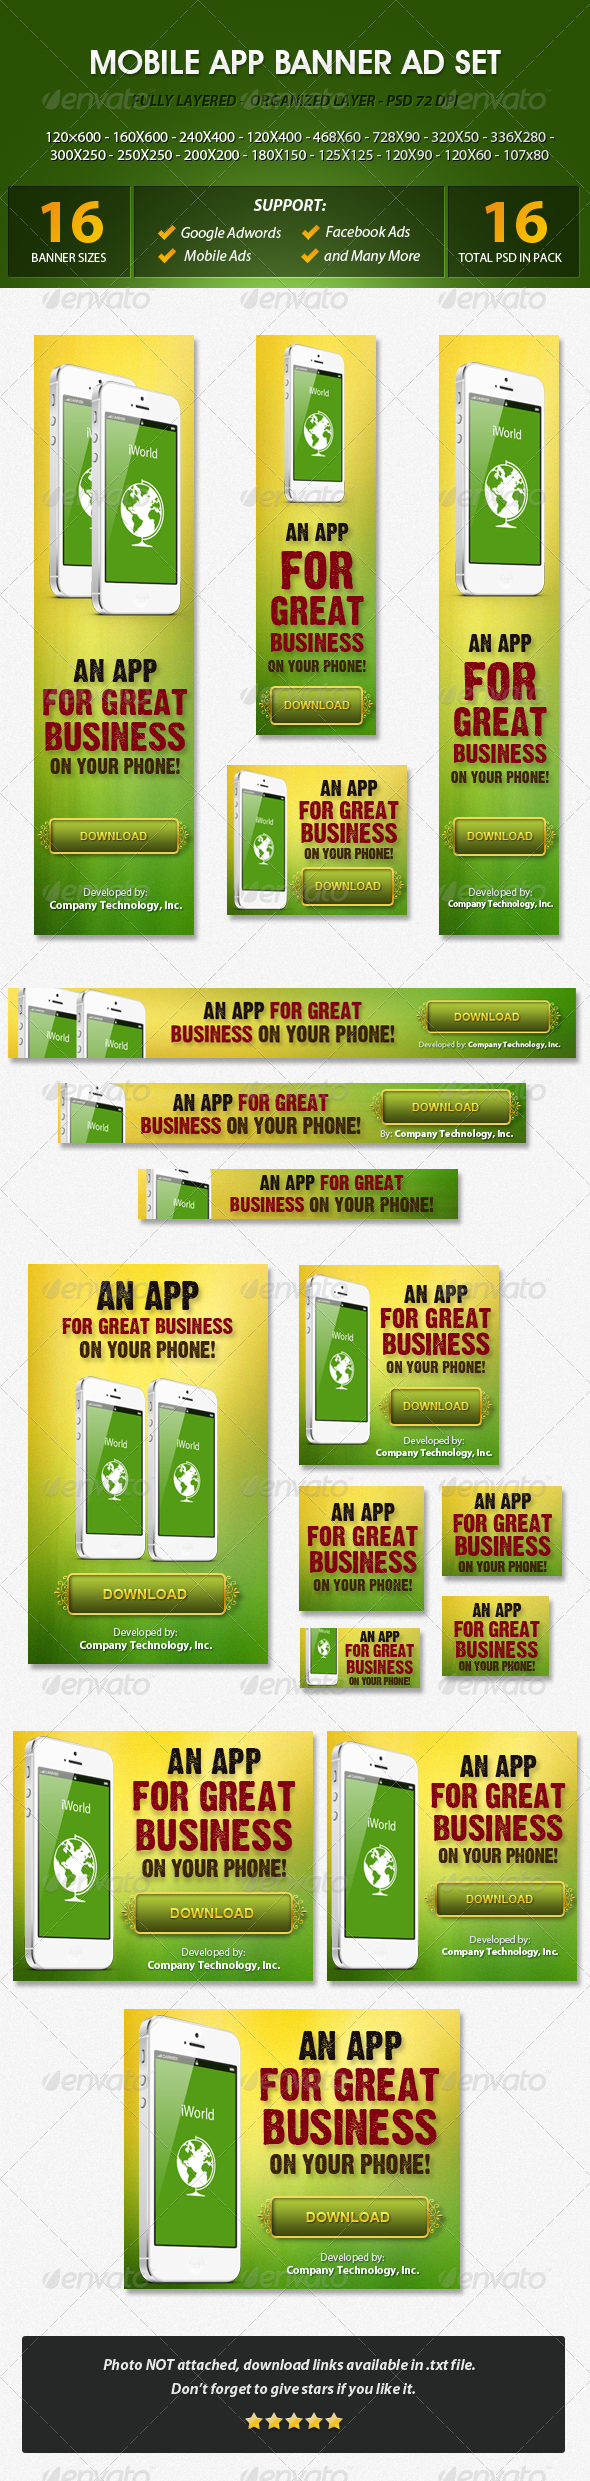 Mobile App Banner ad Set   Mobile app, Web banners and Banners